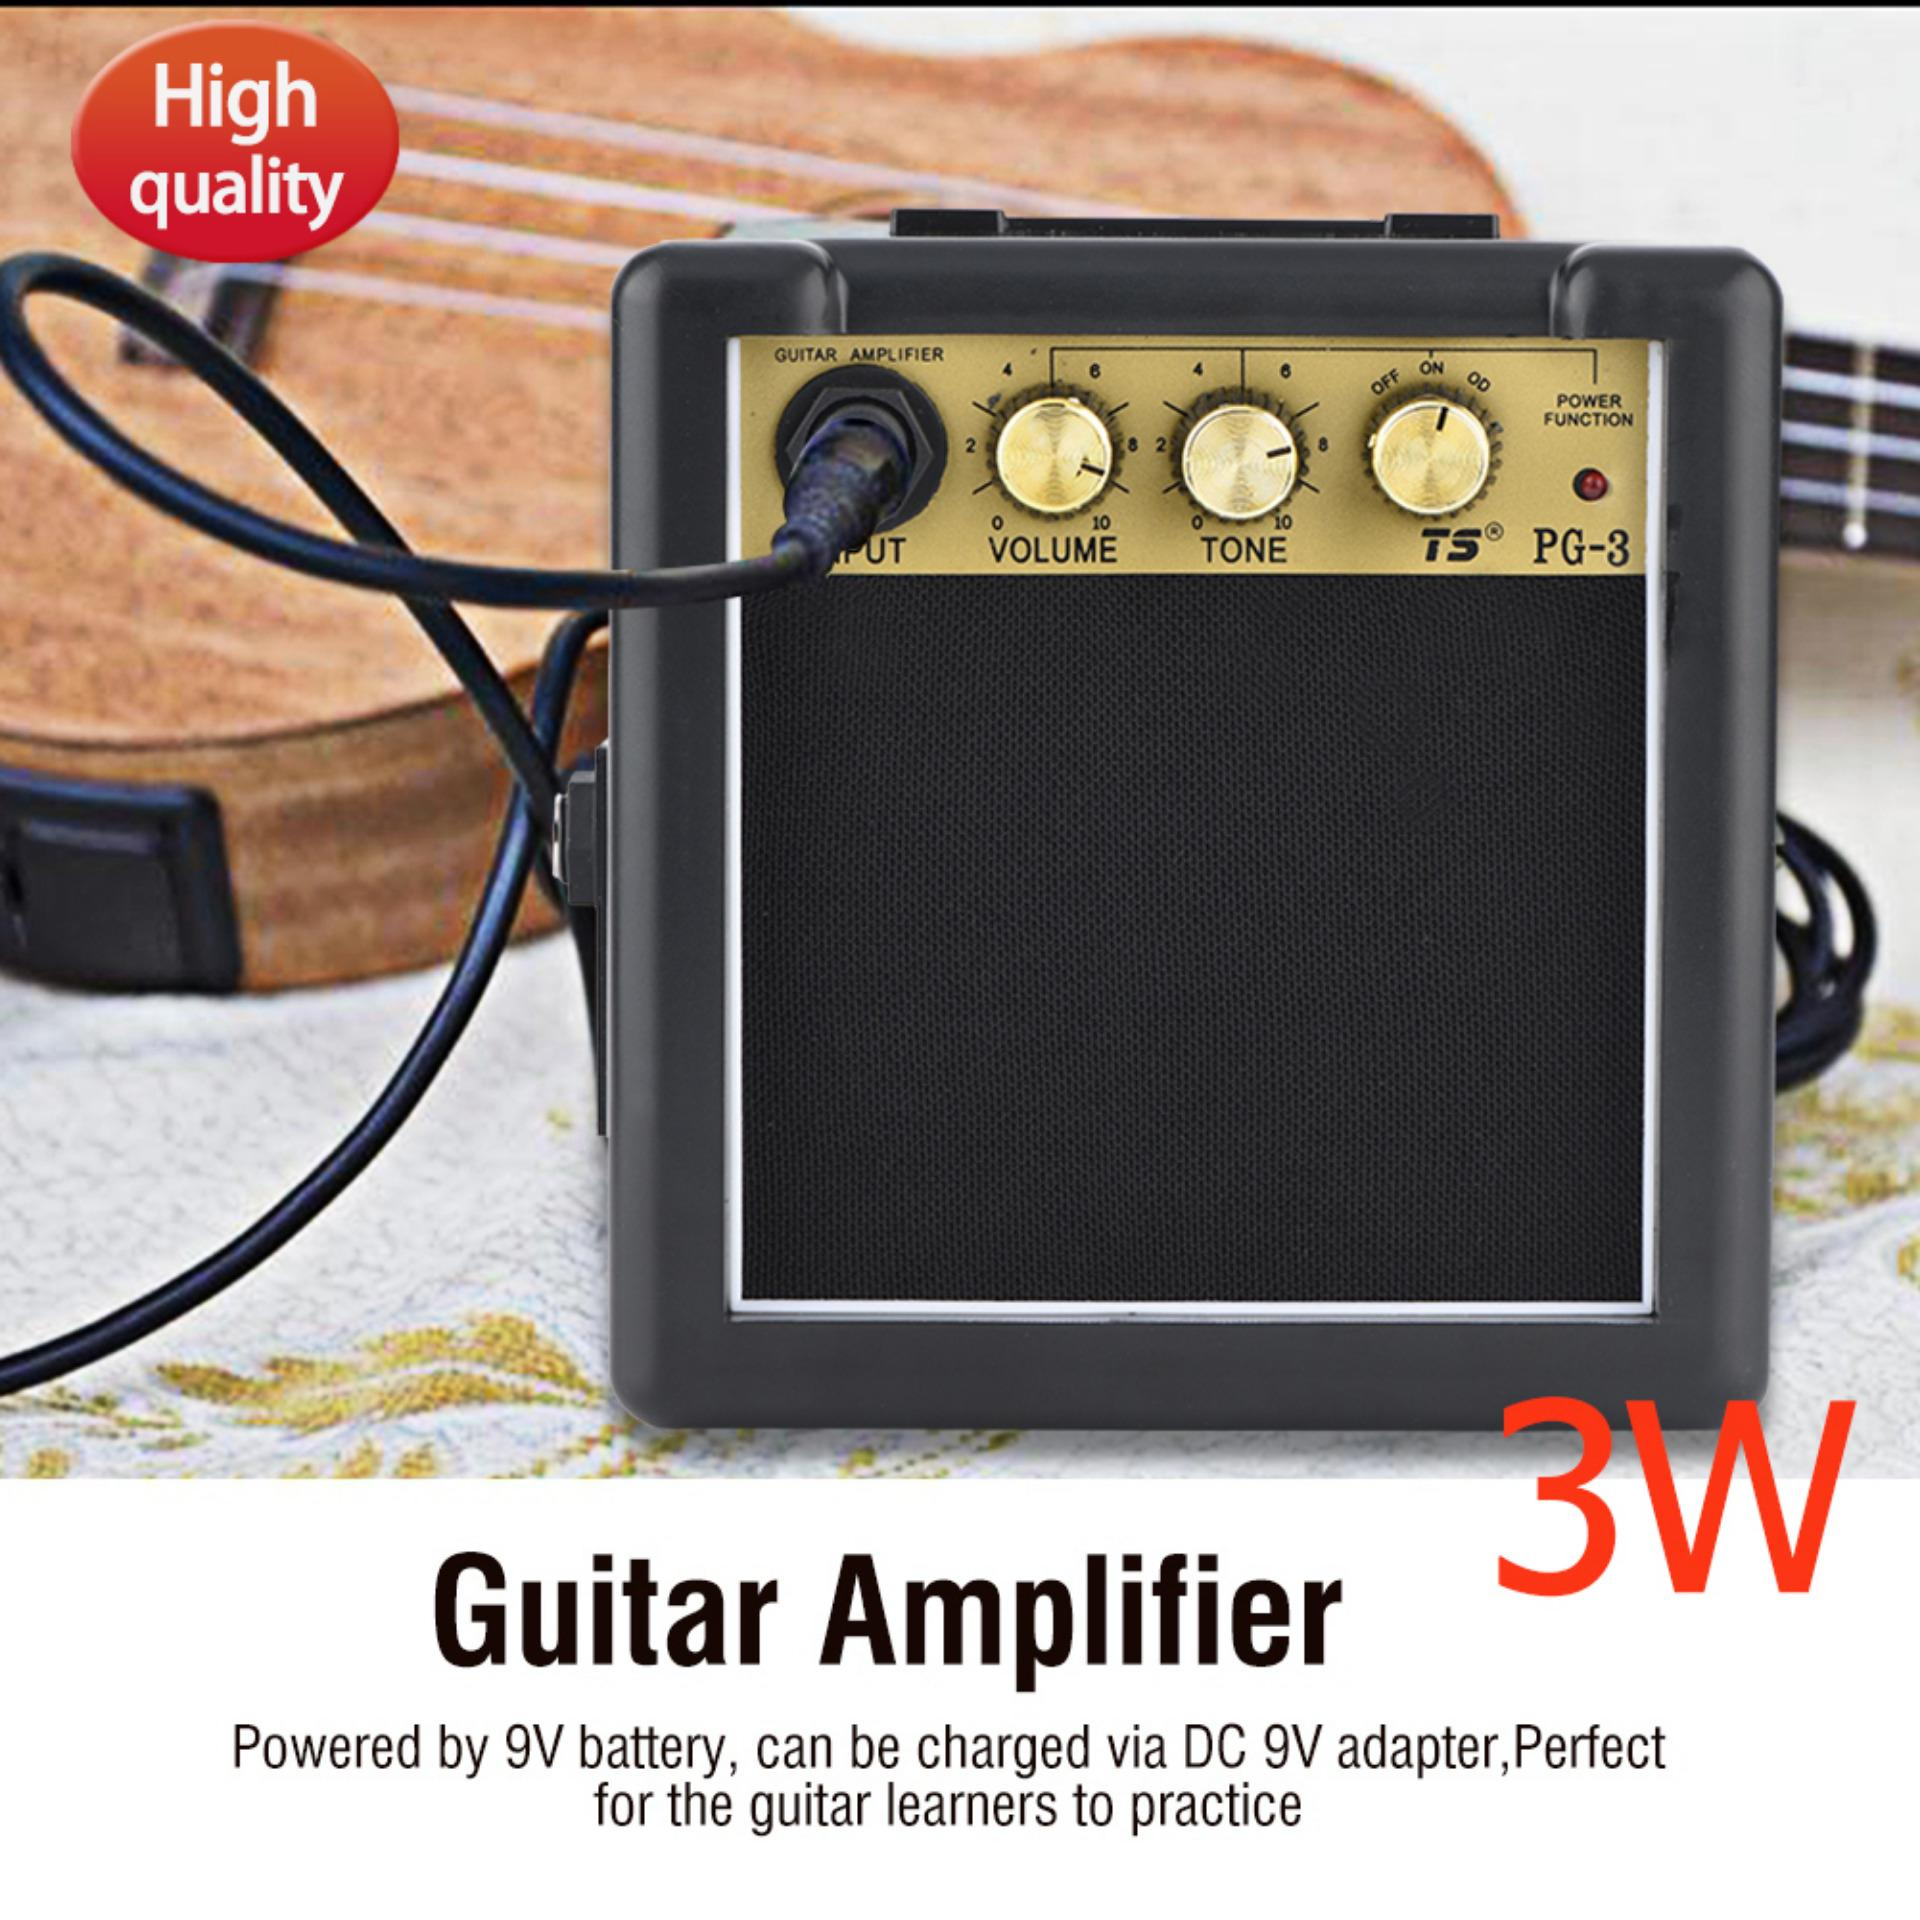 squier sp 10 manual how to and user guide instructions u2022 rh manualguidefactory today Remington SP-10 10 -Gauge Icom Sp 10